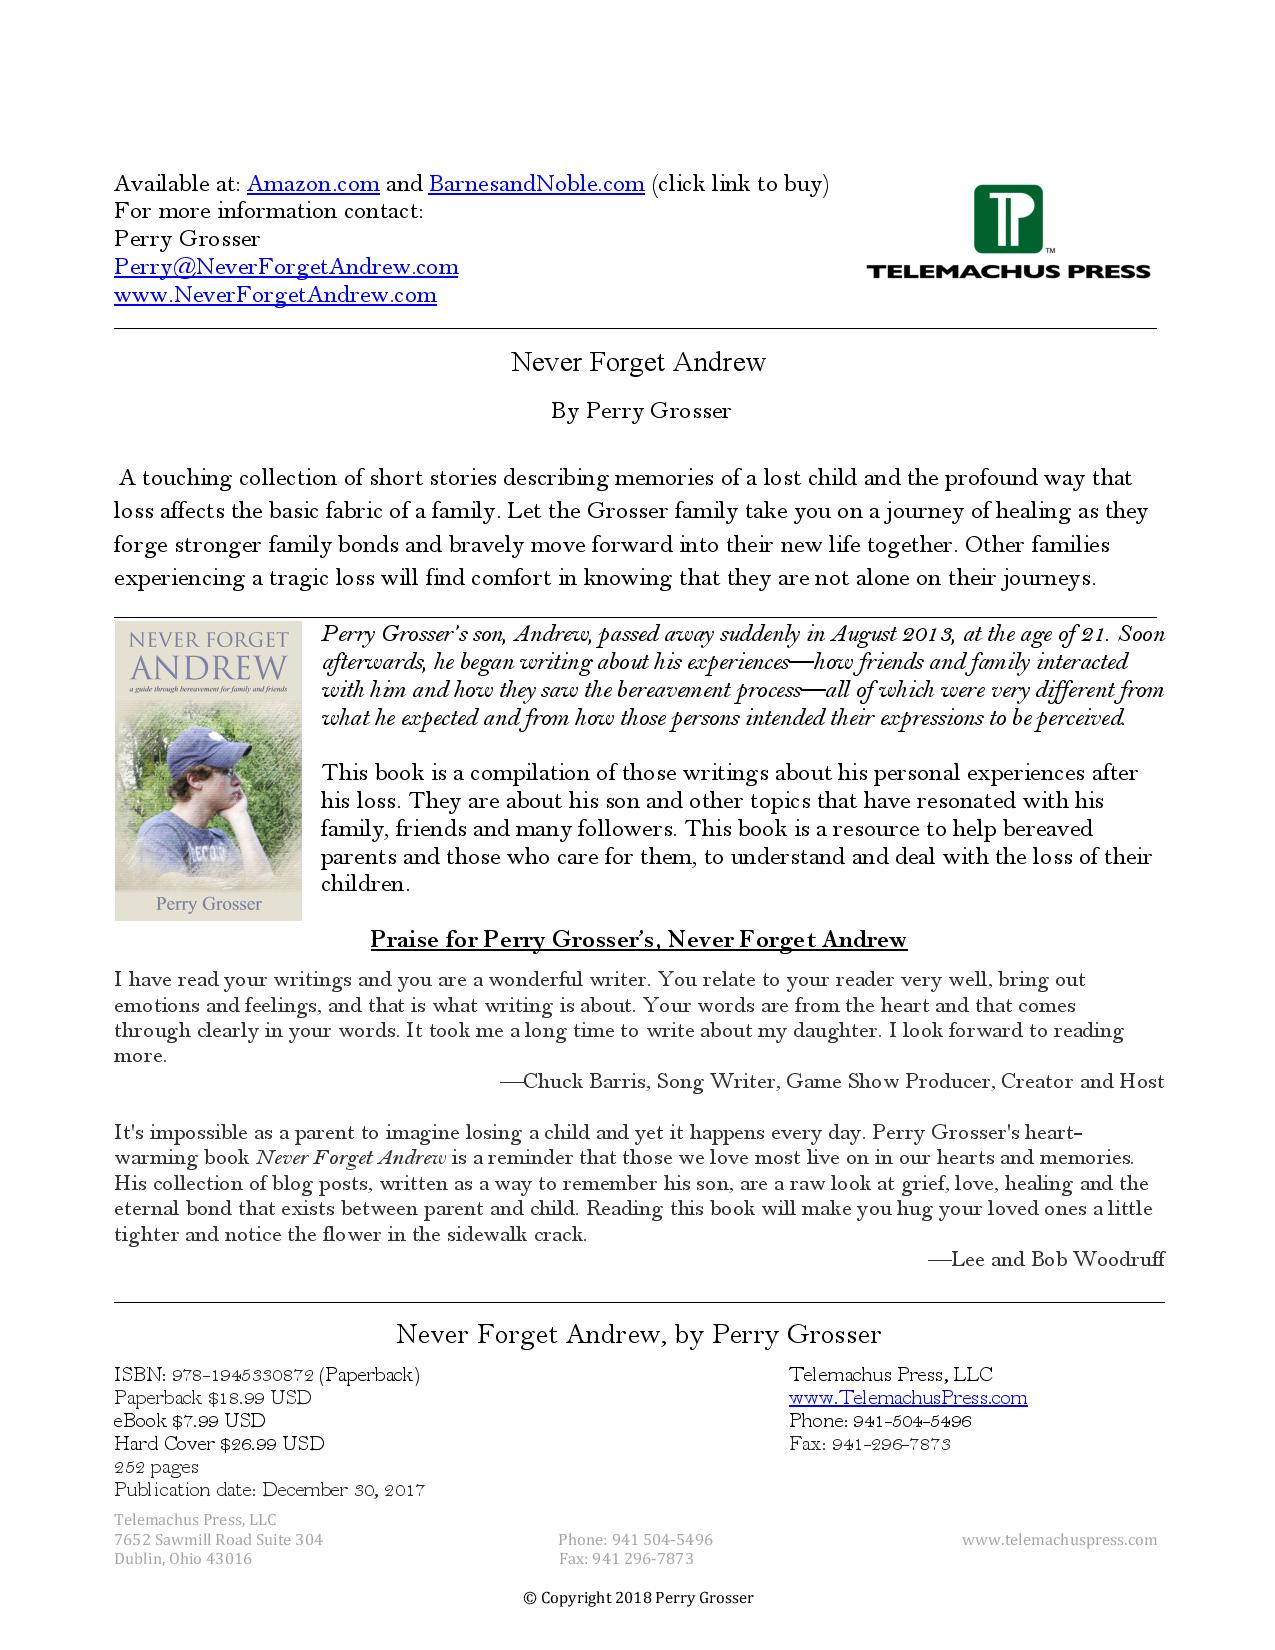 20180424_Andrew_PressRelease_General_SH-page-001 - Never